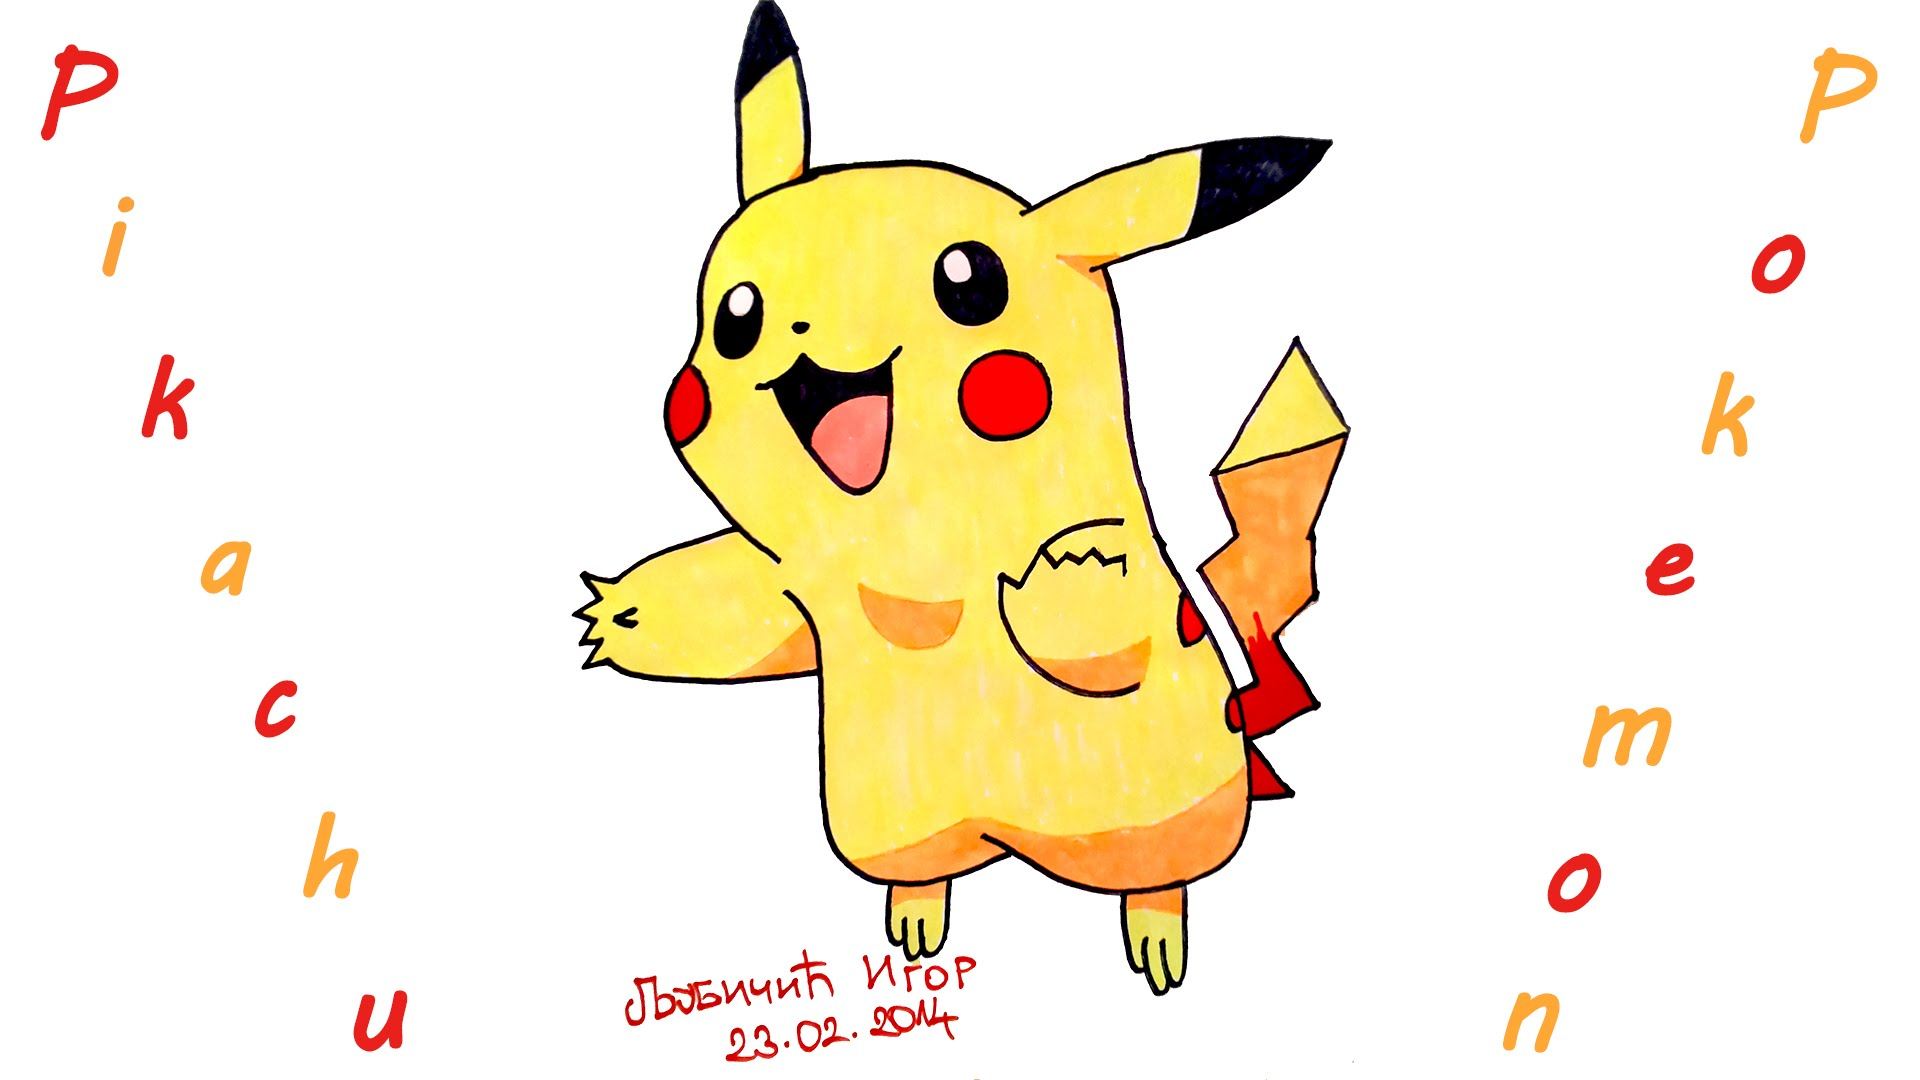 pikachu easy drawing at getdrawings com free for personal use